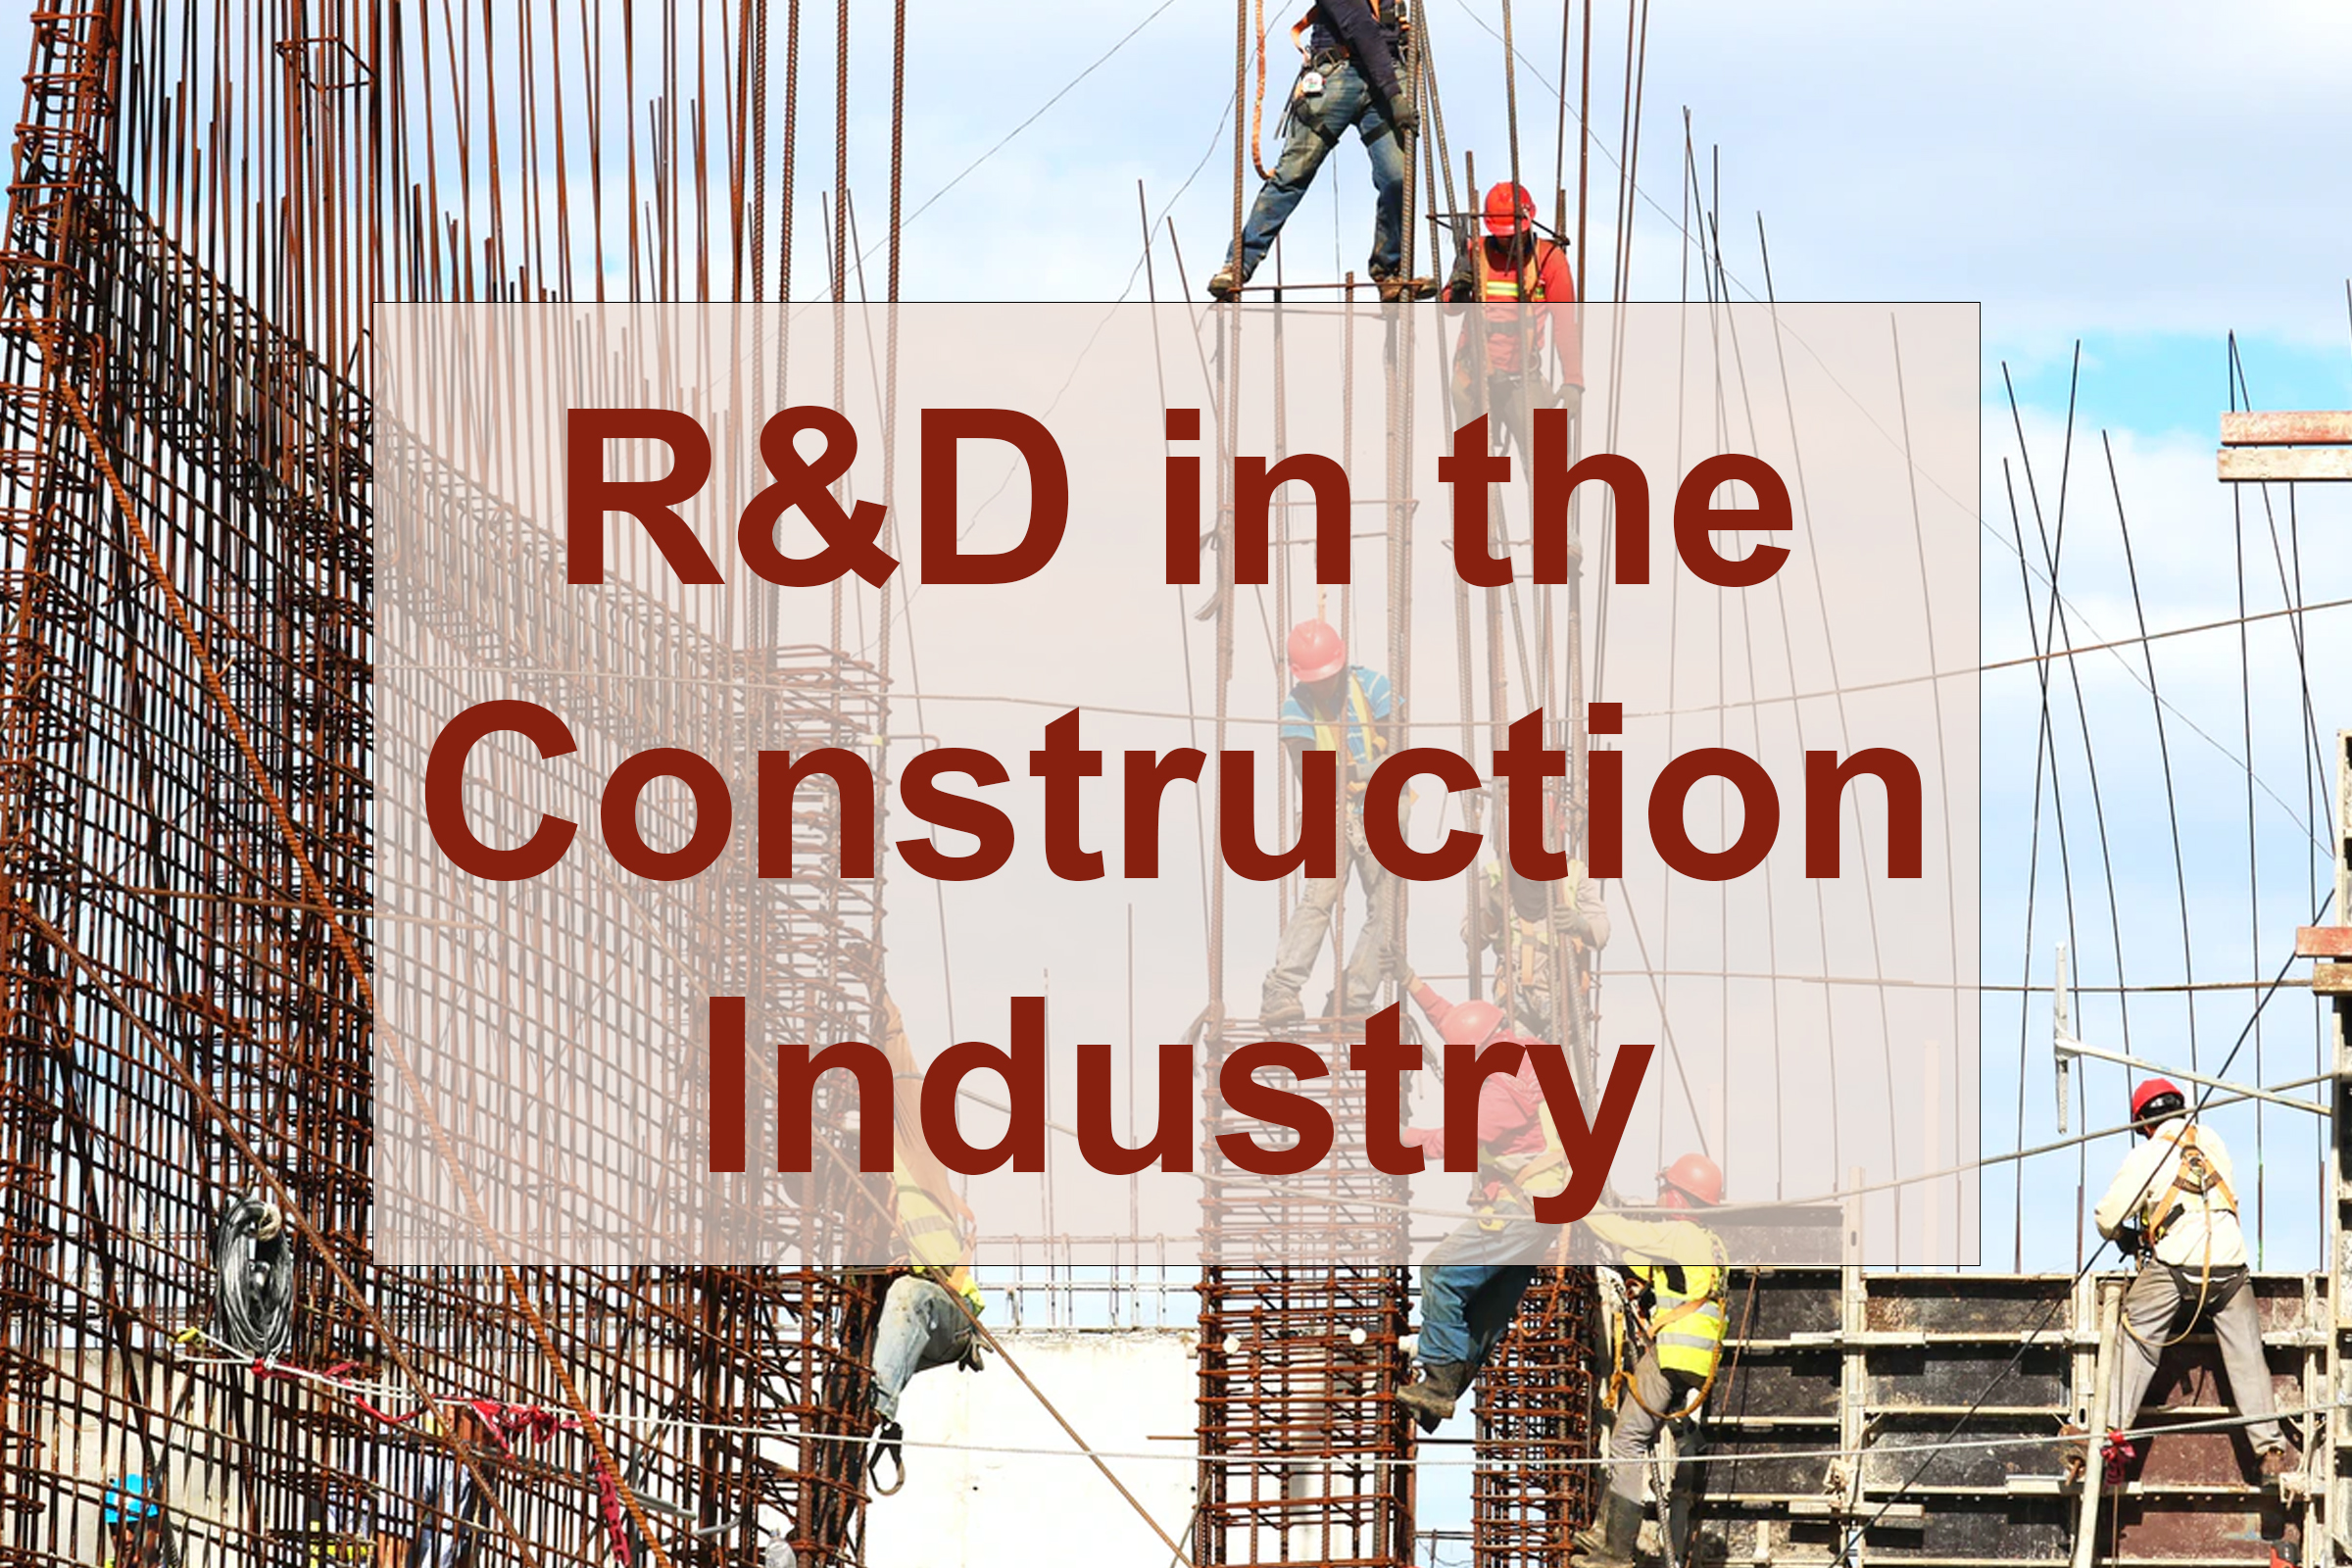 R&D in the Construction Industry